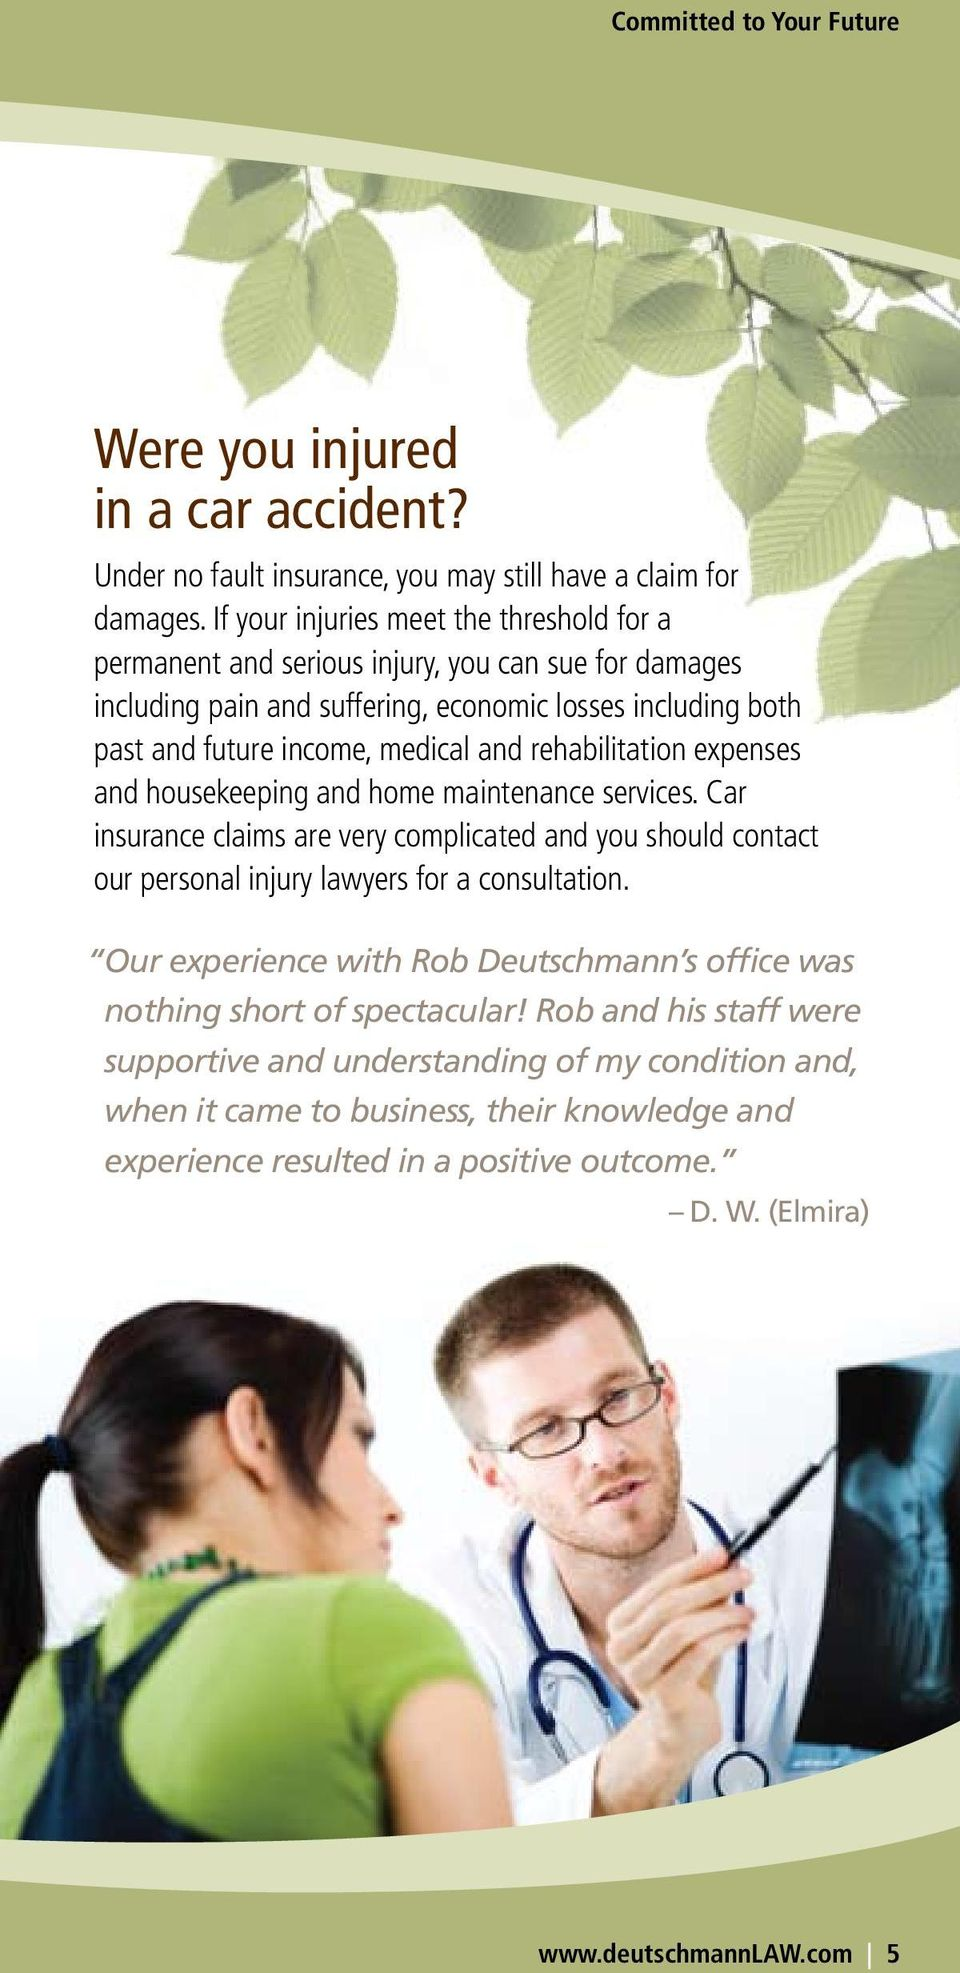 rehabilitation expenses and housekeeping and home maintenance services. Car insurance claims are very complicated and you should contact our personal injury lawyers for a consultation.